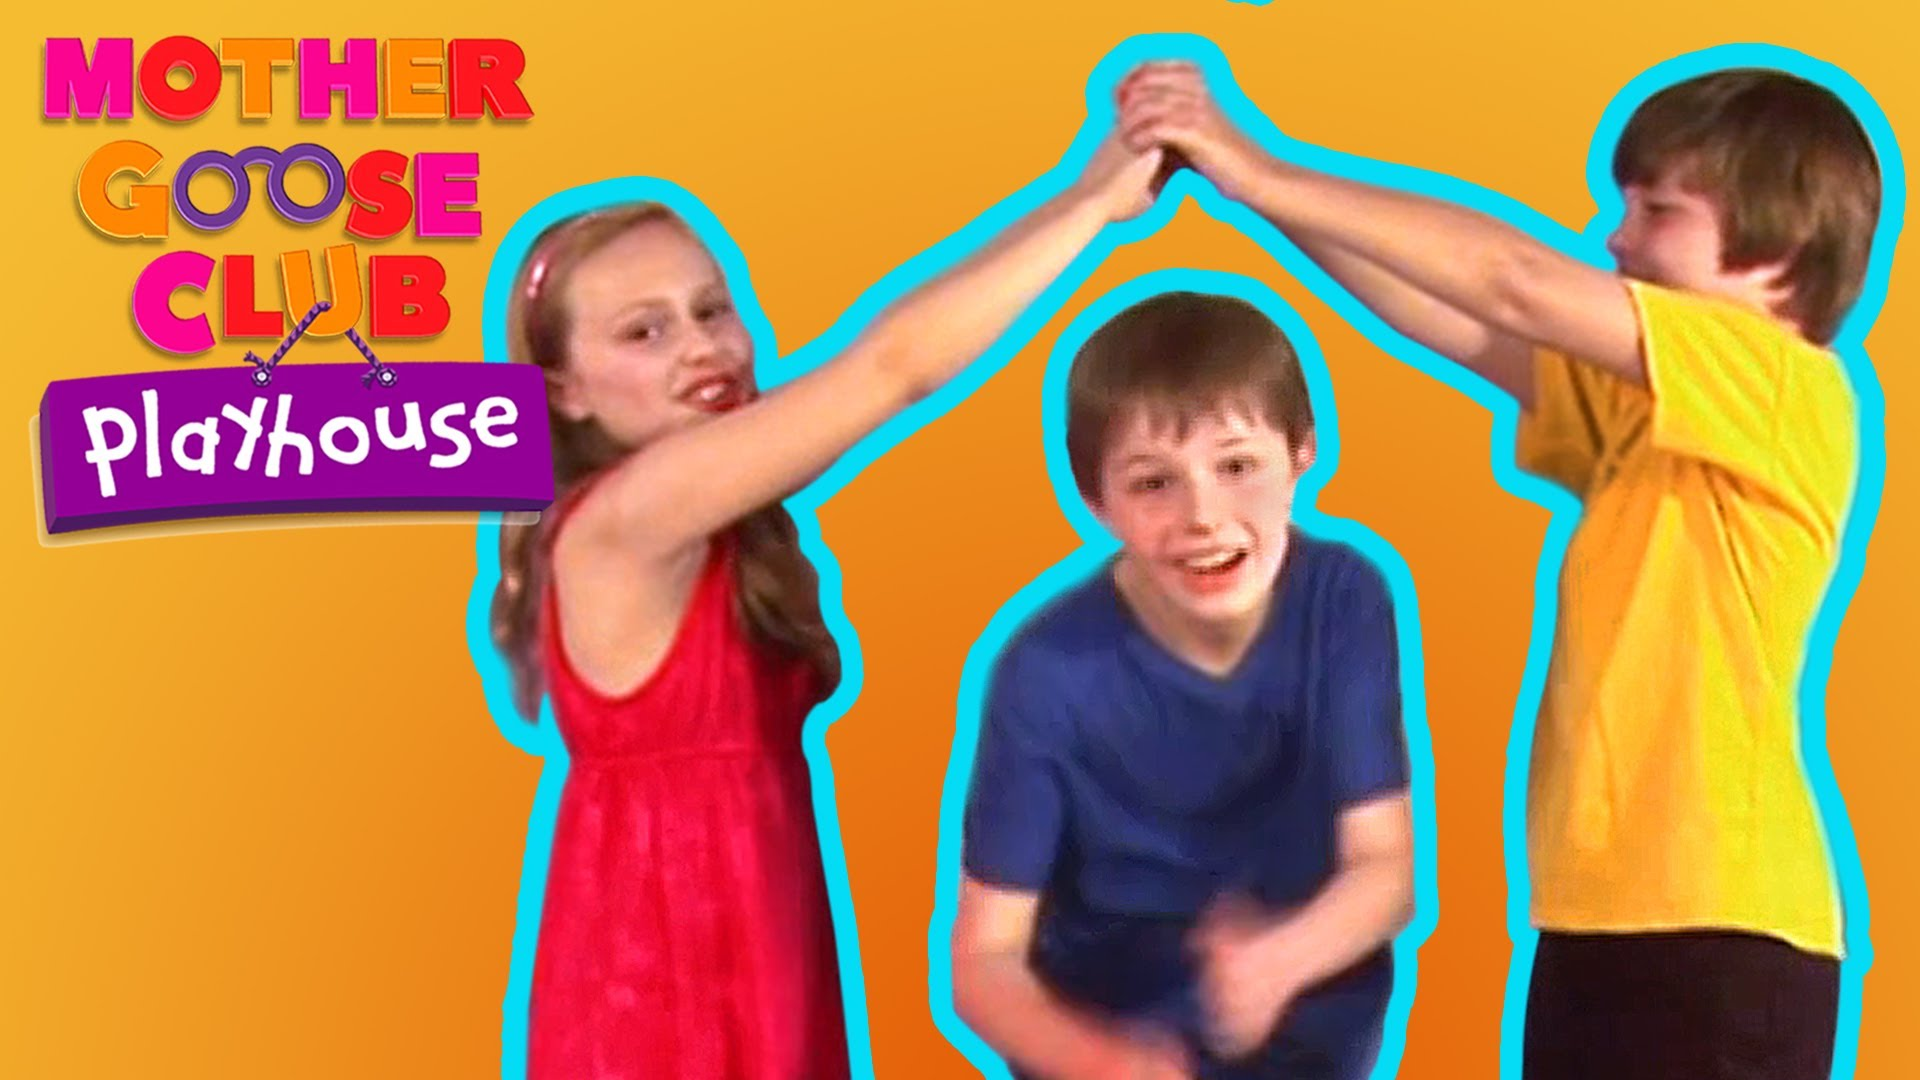 London Bridge Is Falling Down | Mother Goose Club Playhouse Kids Video